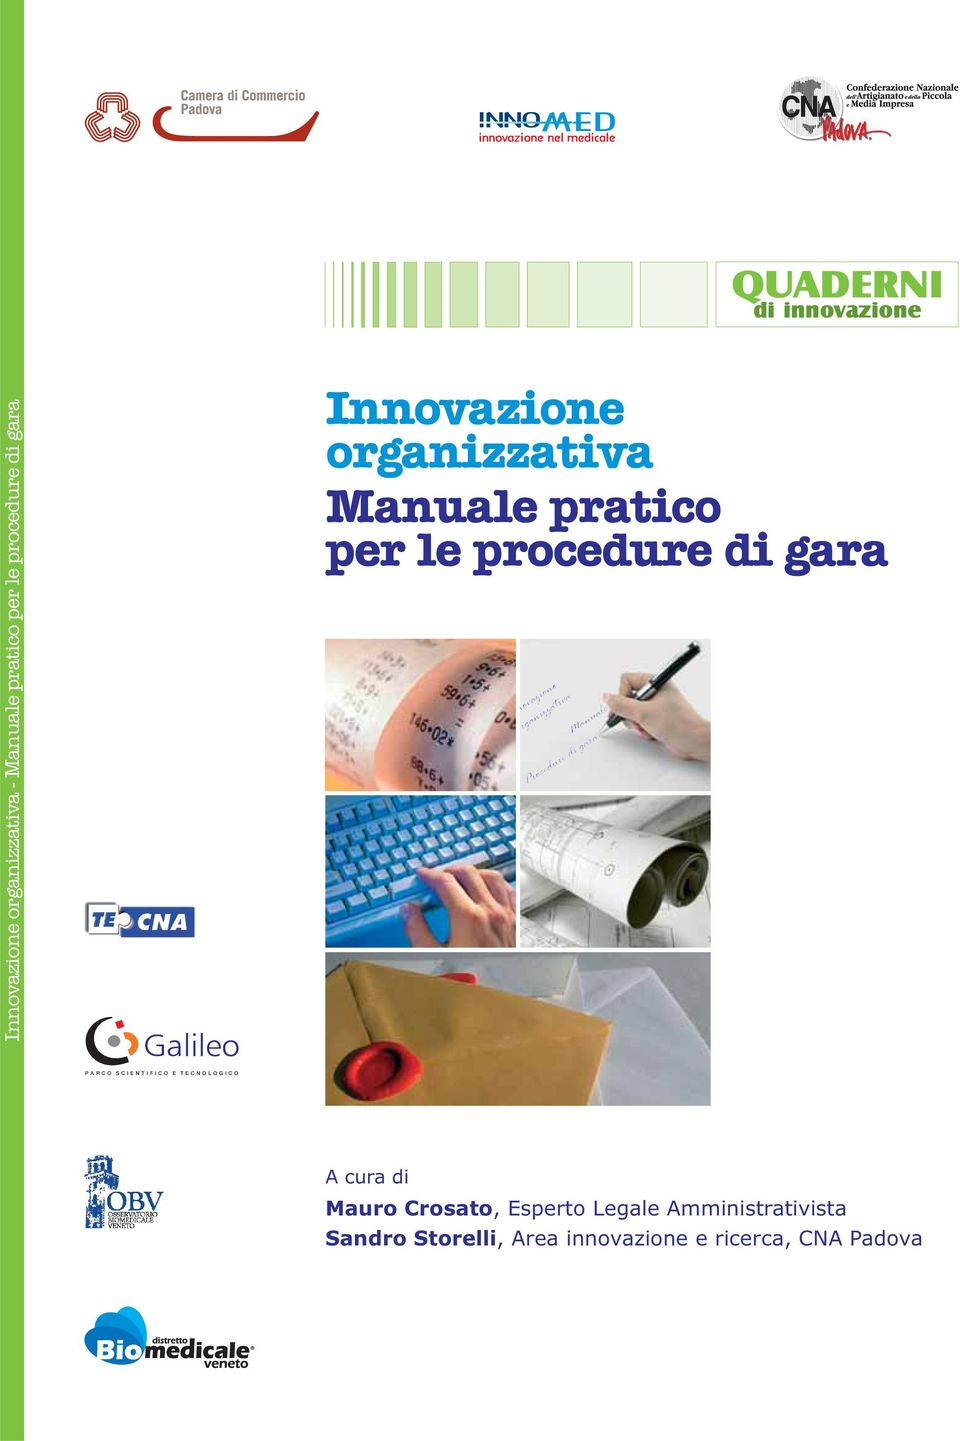 Manuale pratico per le procedure di gara Manuale Procedure di gara A cura di Mauro